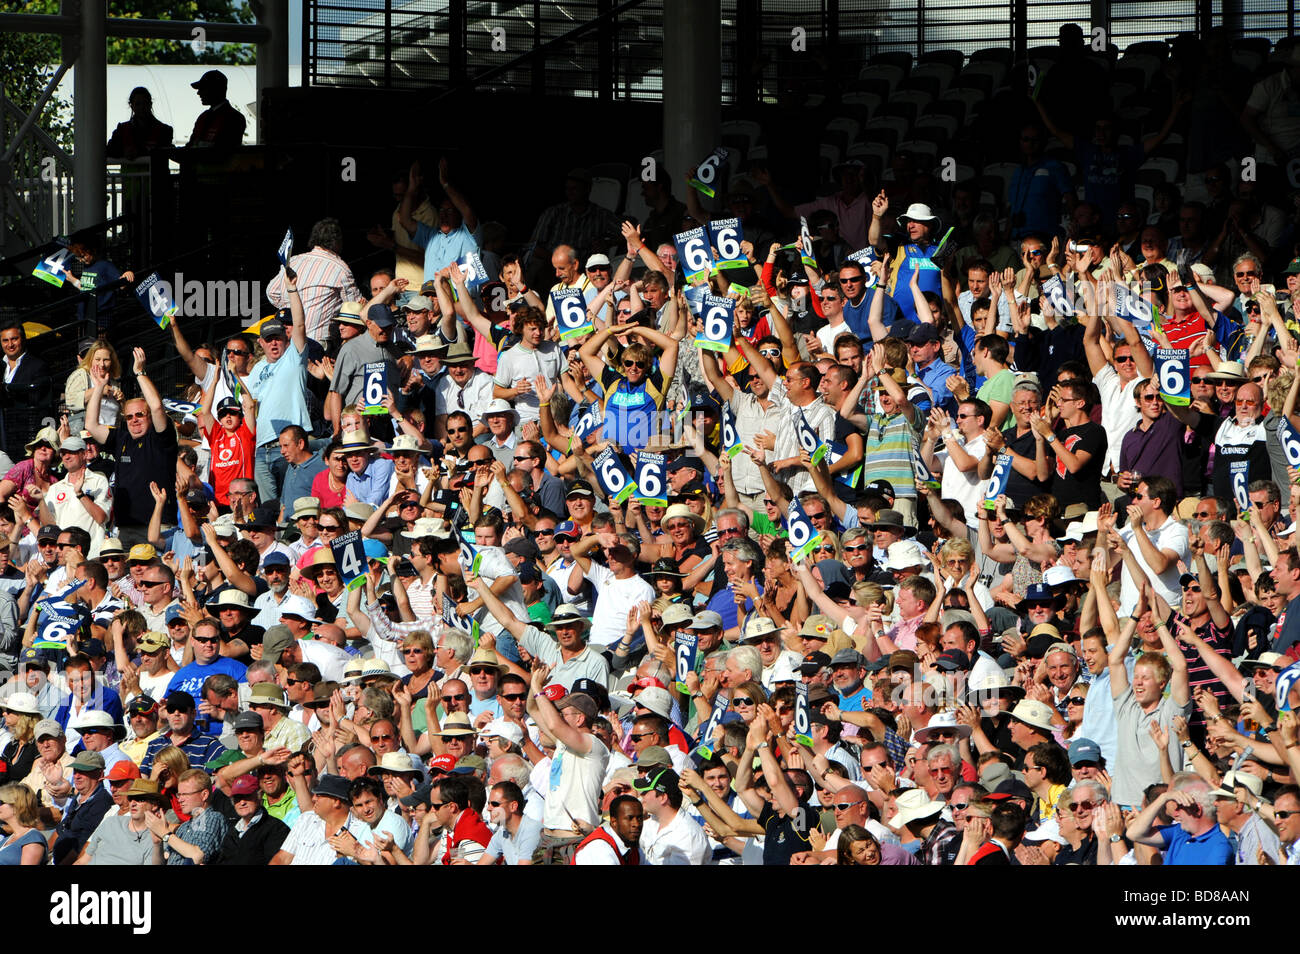 Members of the crowd at a cricket match at lord's hold up some six signs - Stock Image